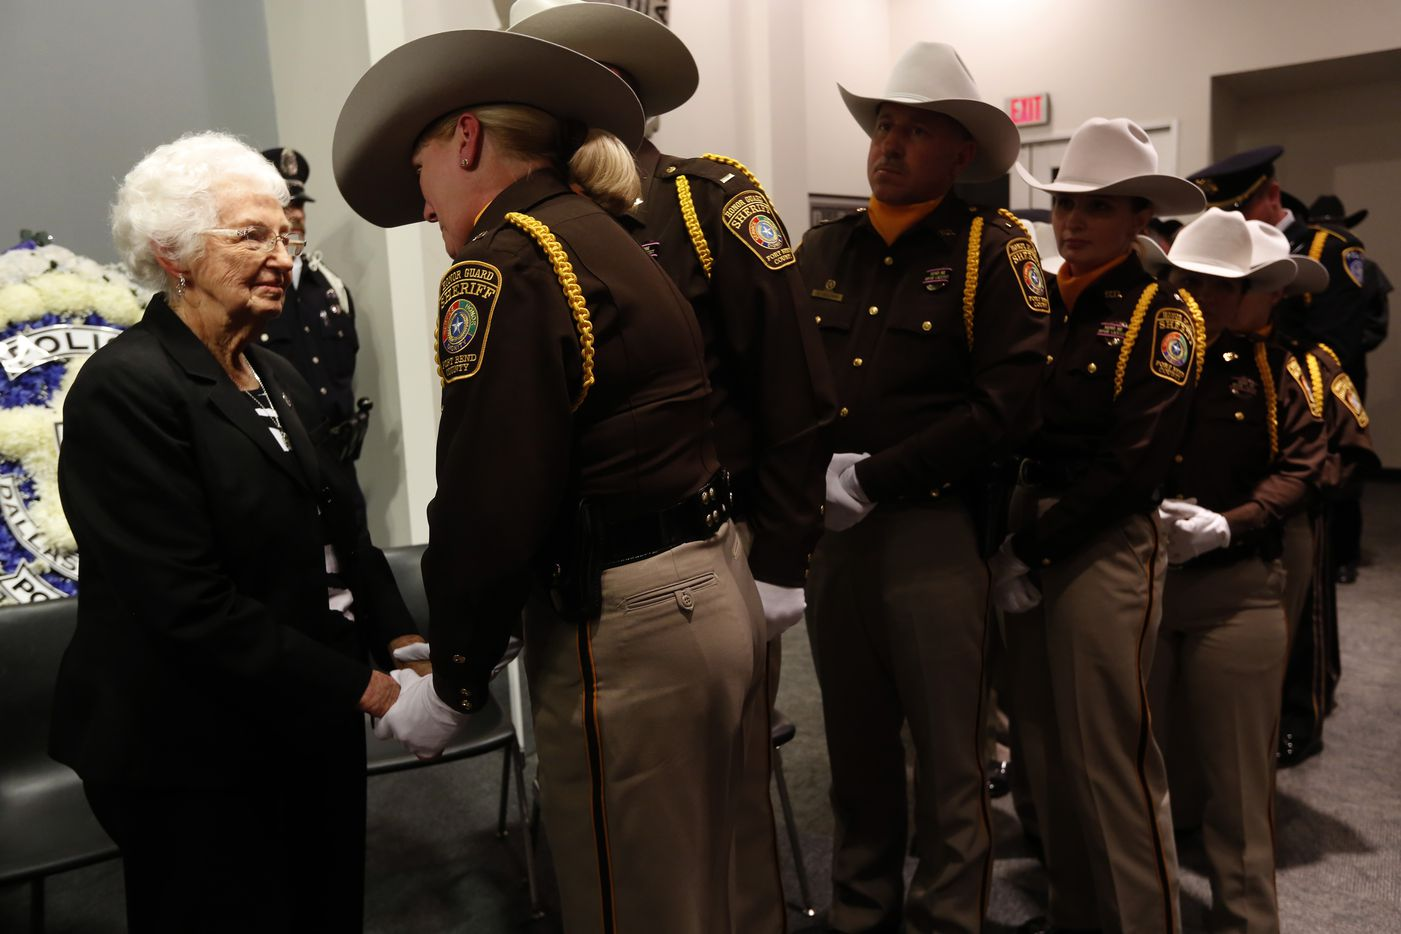 Police officers from around Texas wait in line to shake the hand of Marie Tippit, widow of slain Dallas police Officer J.D. Tippit, at Dallas Police Association headquarters on Nov. 22, 2013, 50 years to the day that President John F. Kennedy and Officer Tippit were killed.